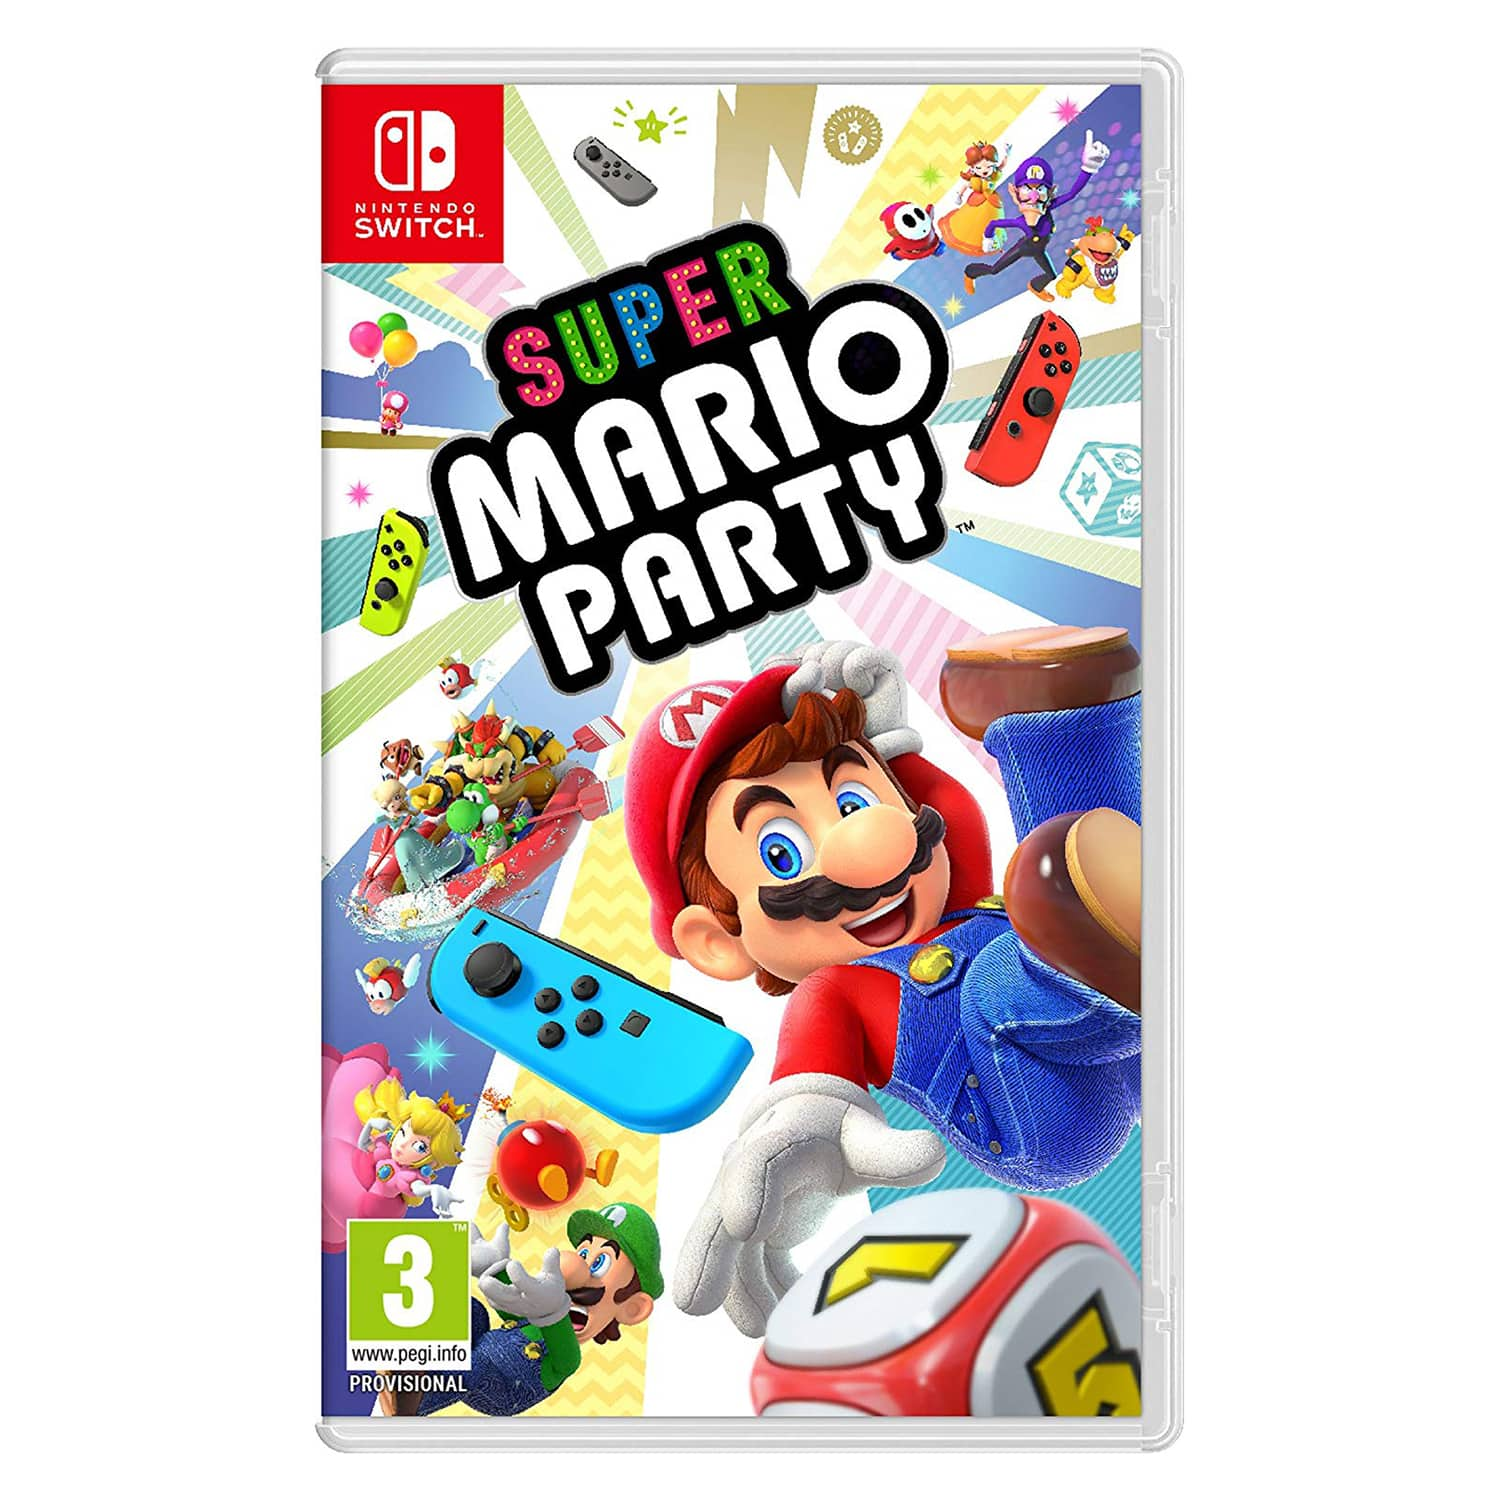 Super Mario Party for Nintendo Switch Video Game - $42.49 + Free Shipping